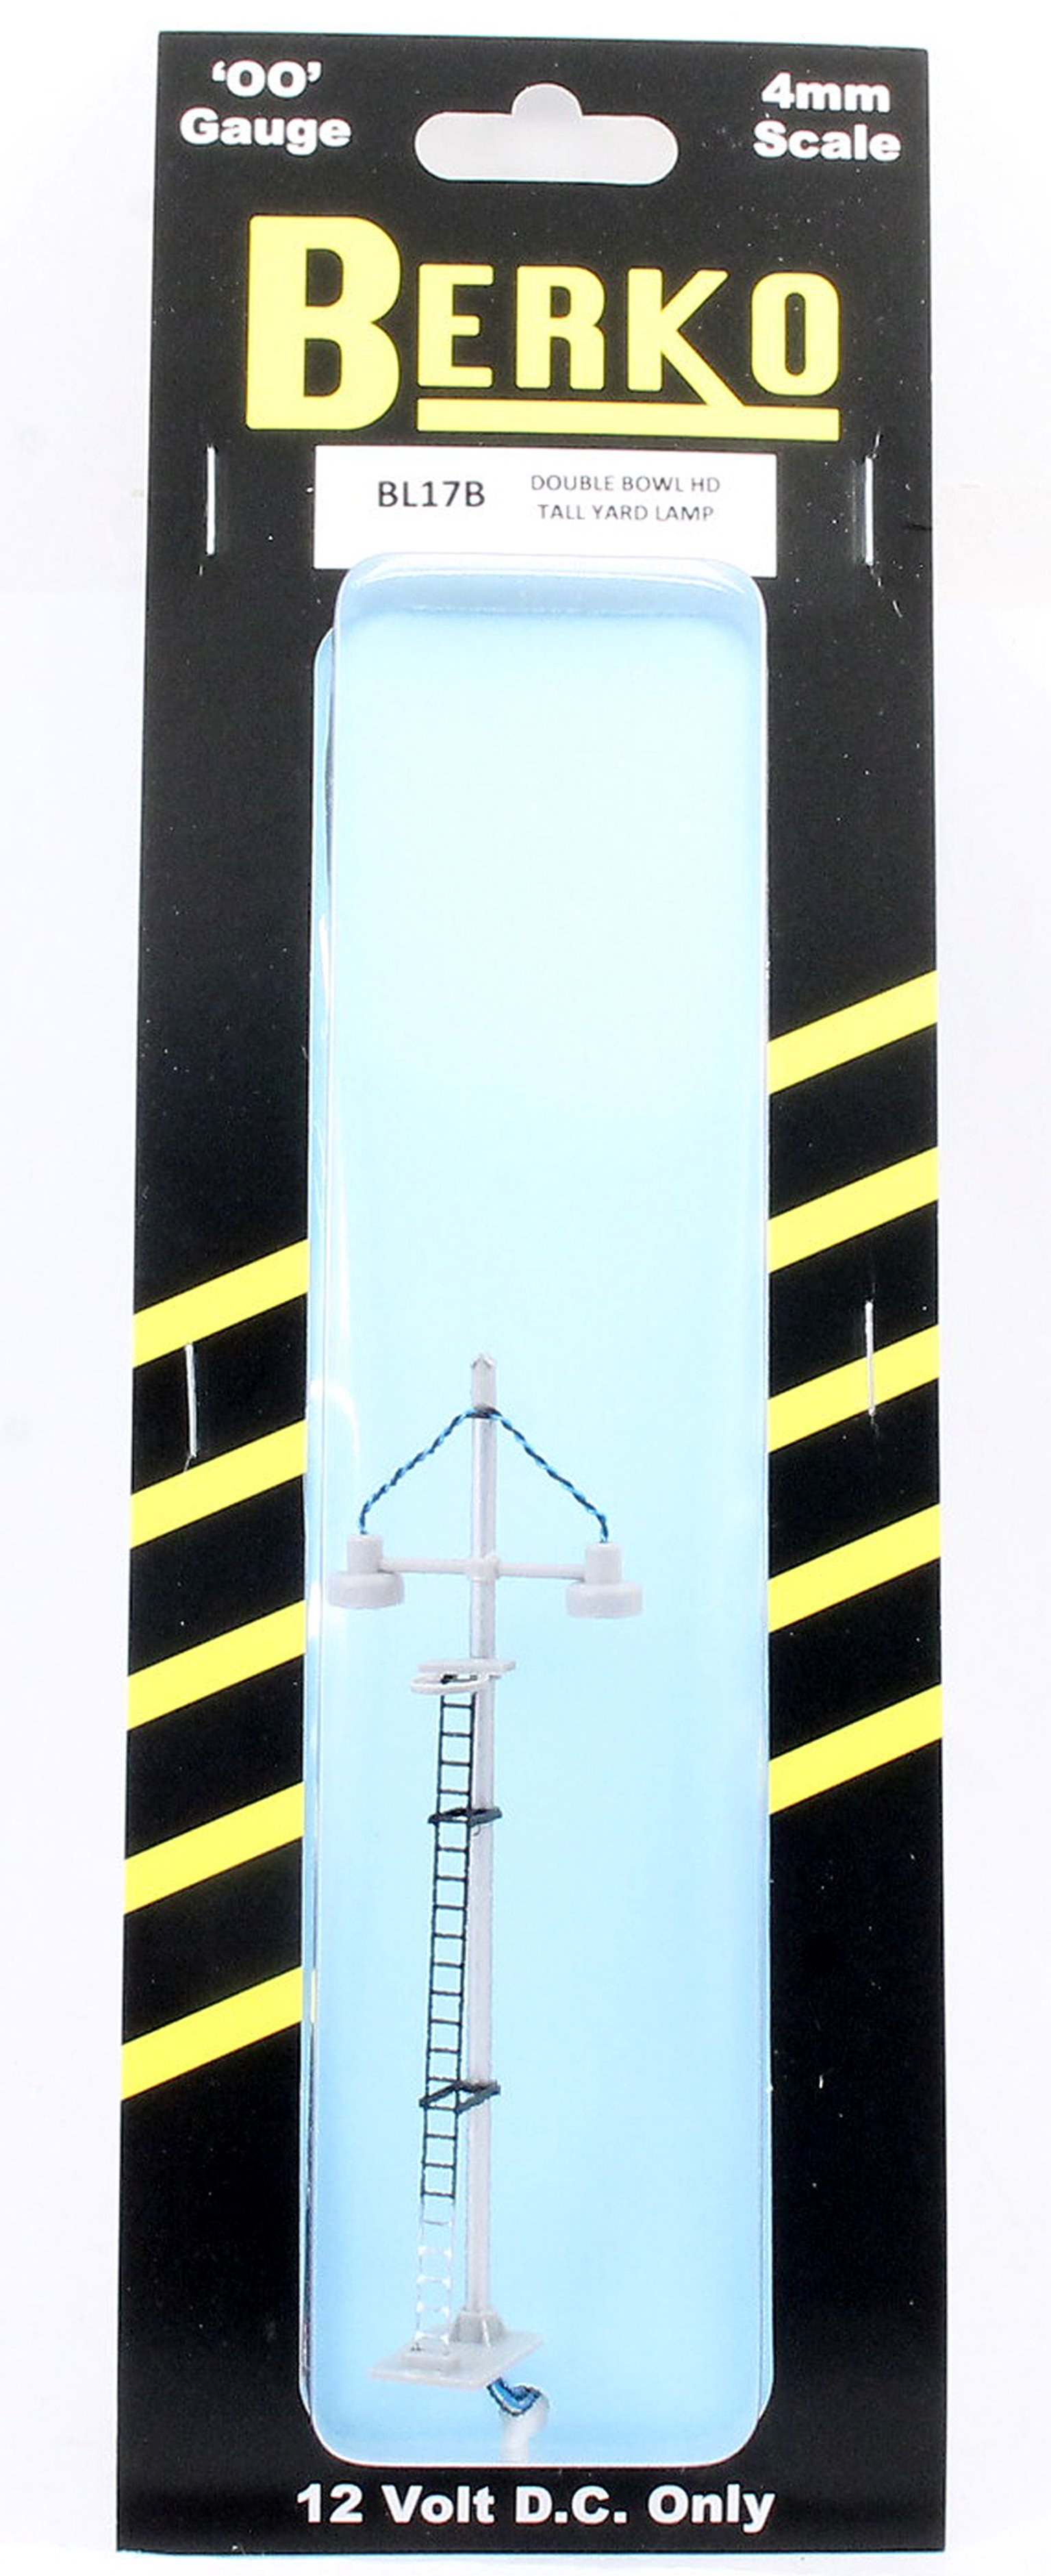 ECKON double bowl head tall yard lamp (Black Ladder with White bas